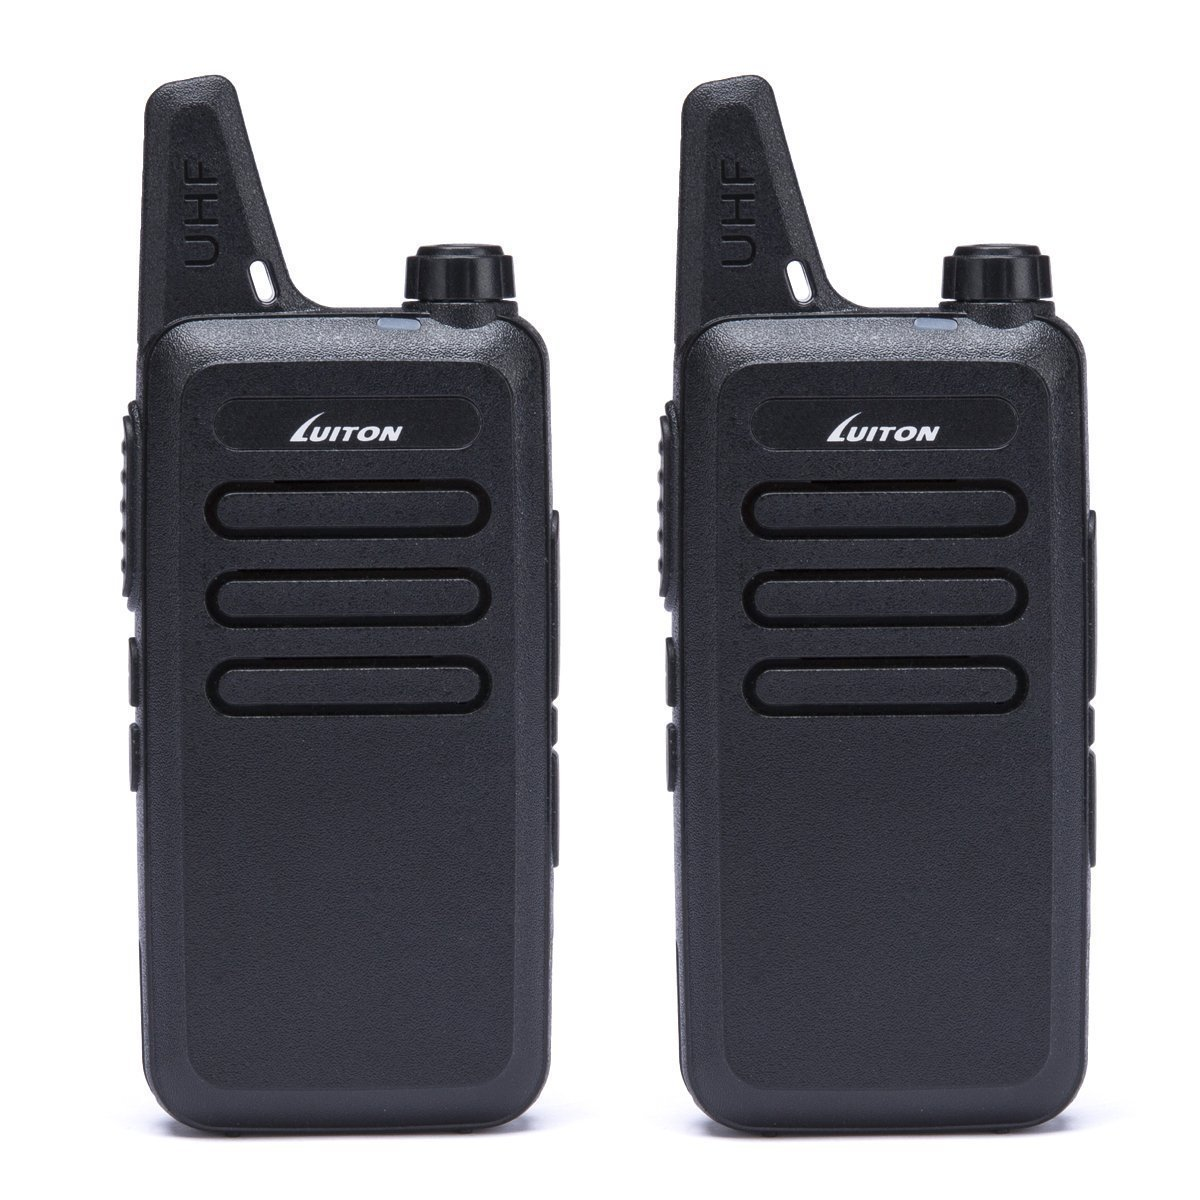 Cheap Ham Radio Usb Interface Find Deals On Electronic 2014 New Fm Walkie Talkies Circuit Board Get Quotations Luiton Lt 316 Amateur Two Way Talkie Uhf